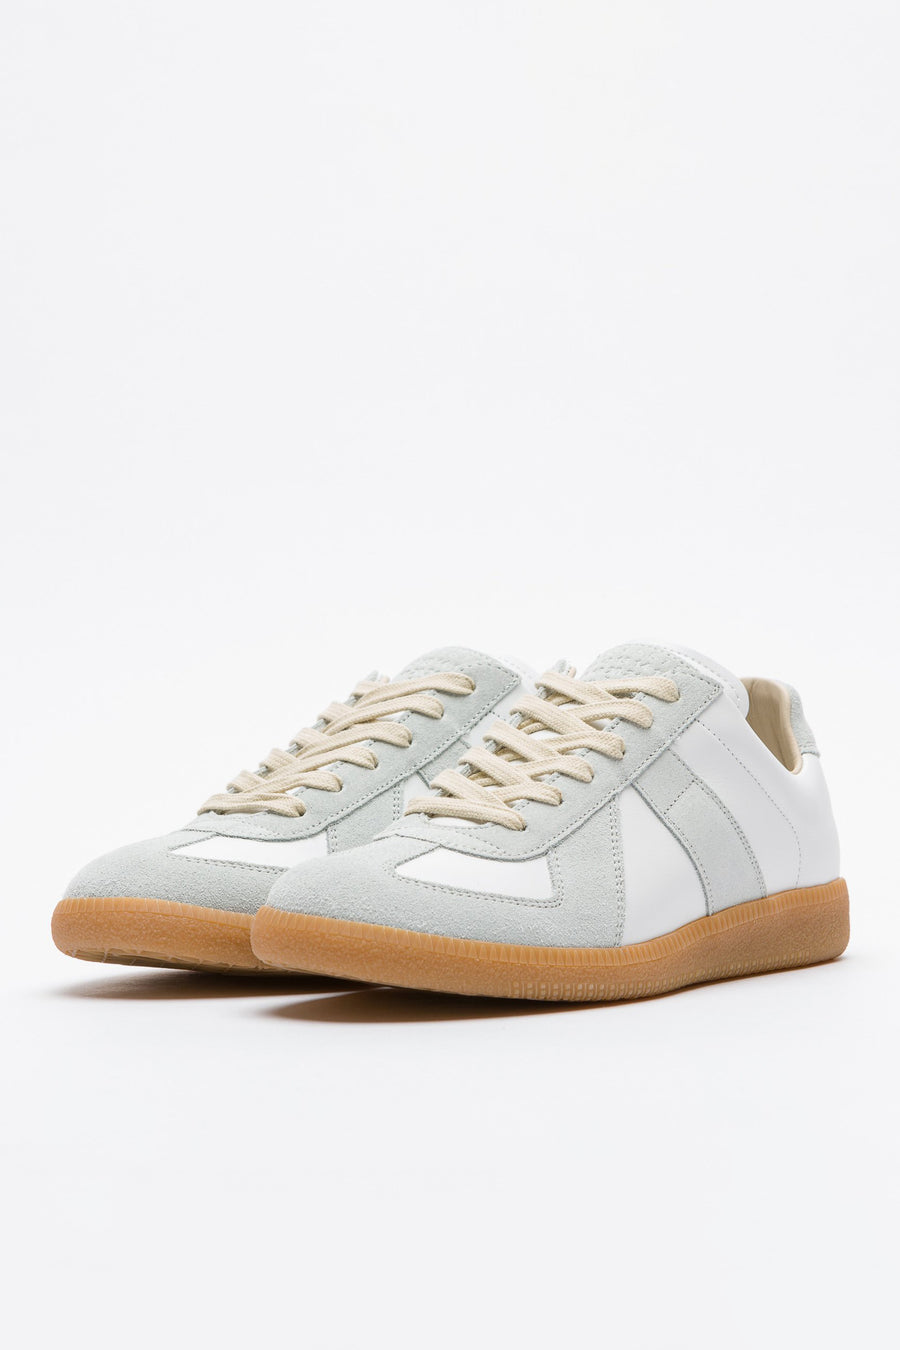 Maison Margiela Calfskin Replica 101 in White/Grey - Notre